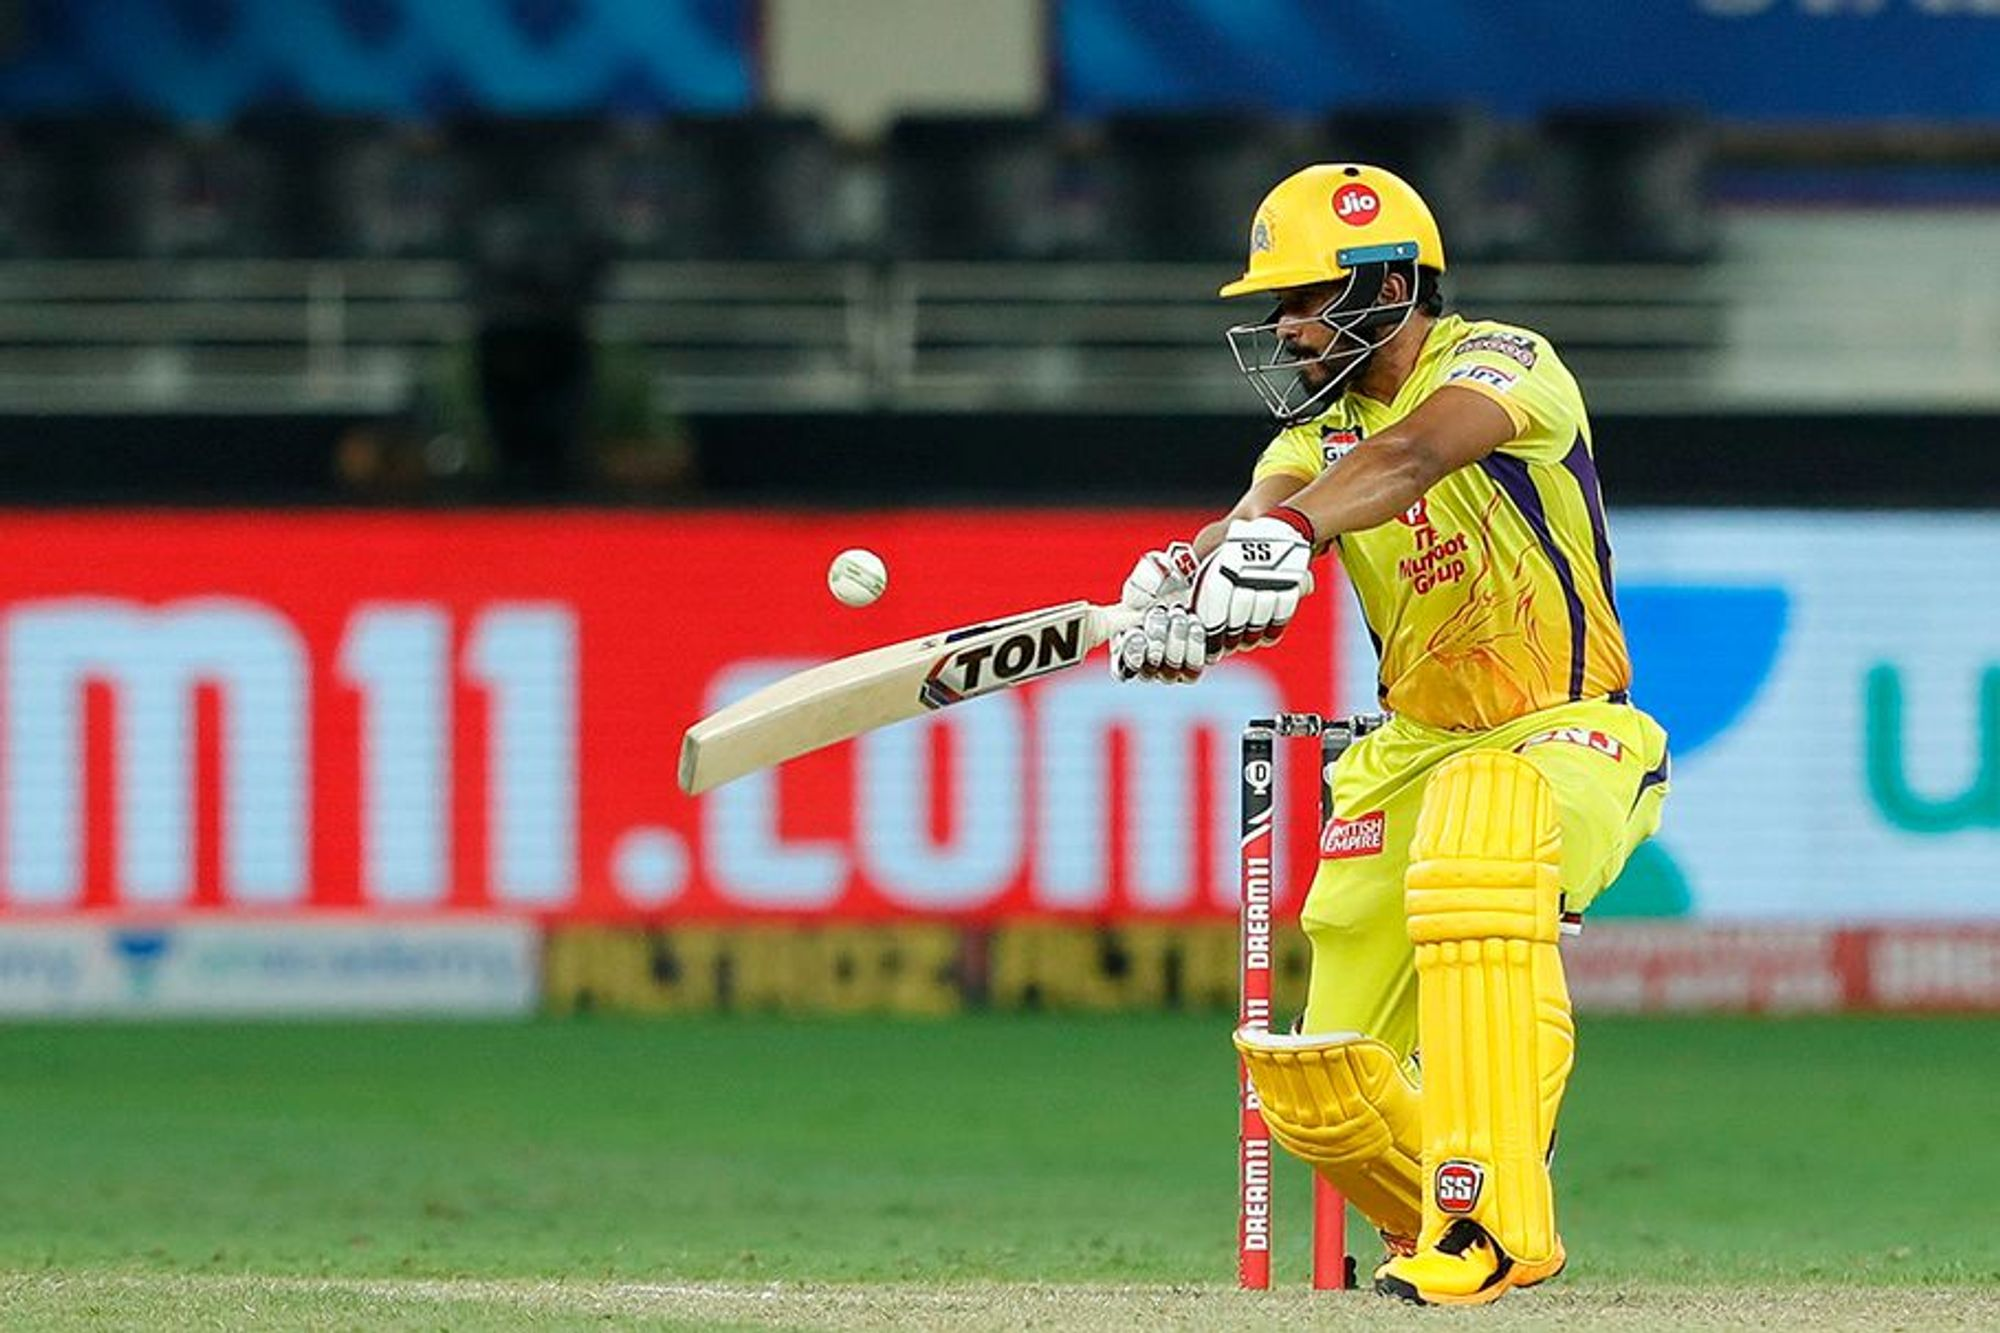 Kedar Jadhav had a forgettable outing in the IPL 2020 with CSK | BCCI/IPL